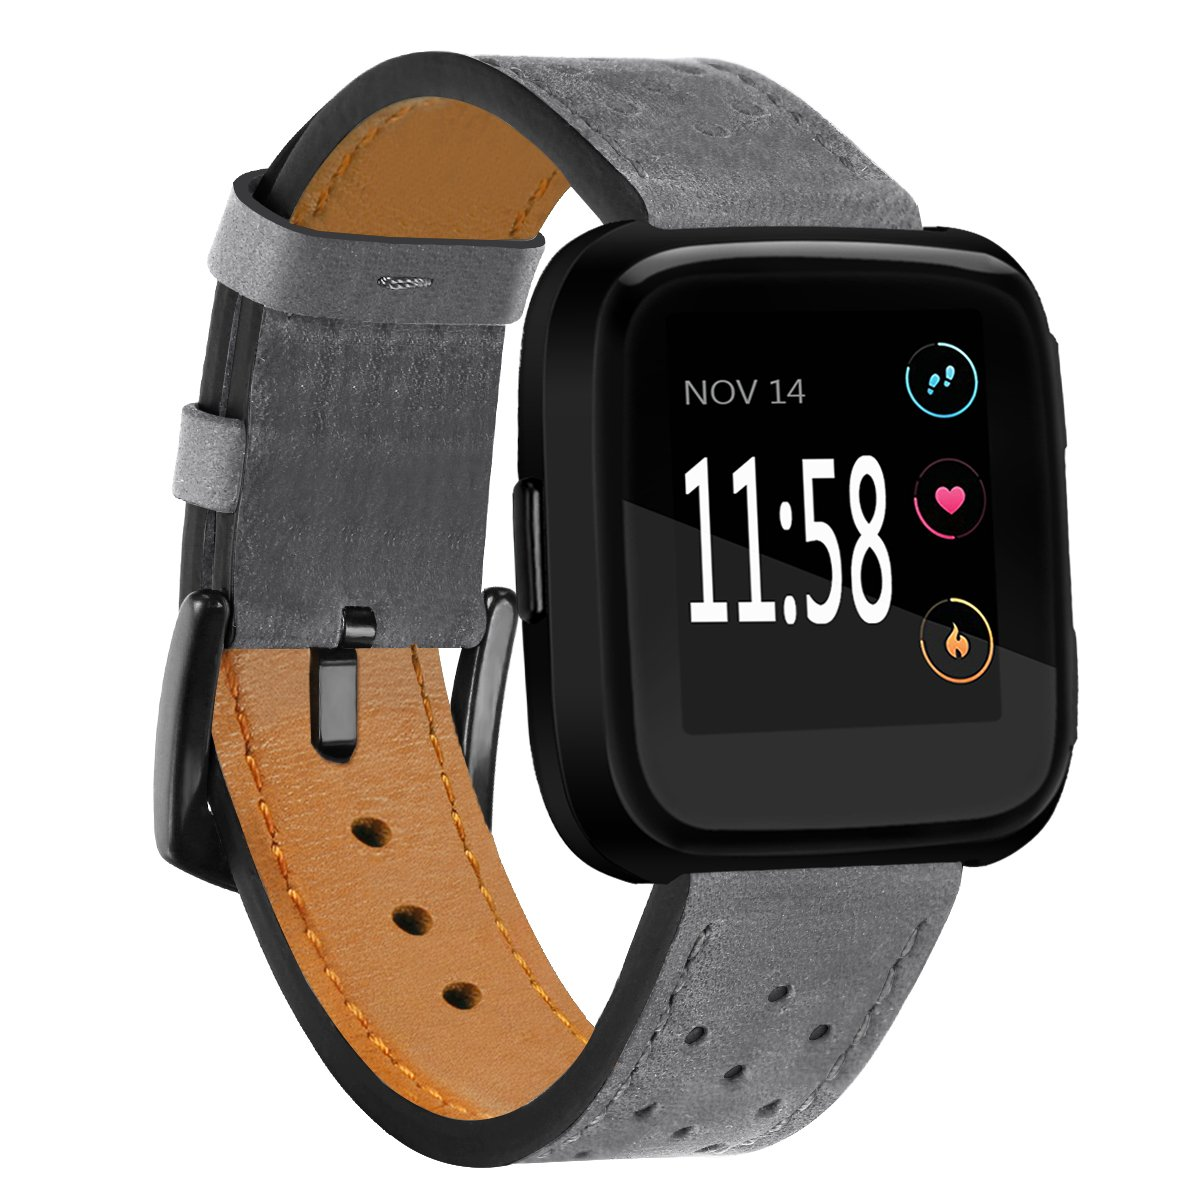 Fitbit Versa Bands Perforated Leather Accessory Band Strap Replacement Wristband for Fitbit Versa Women Men (Gray)